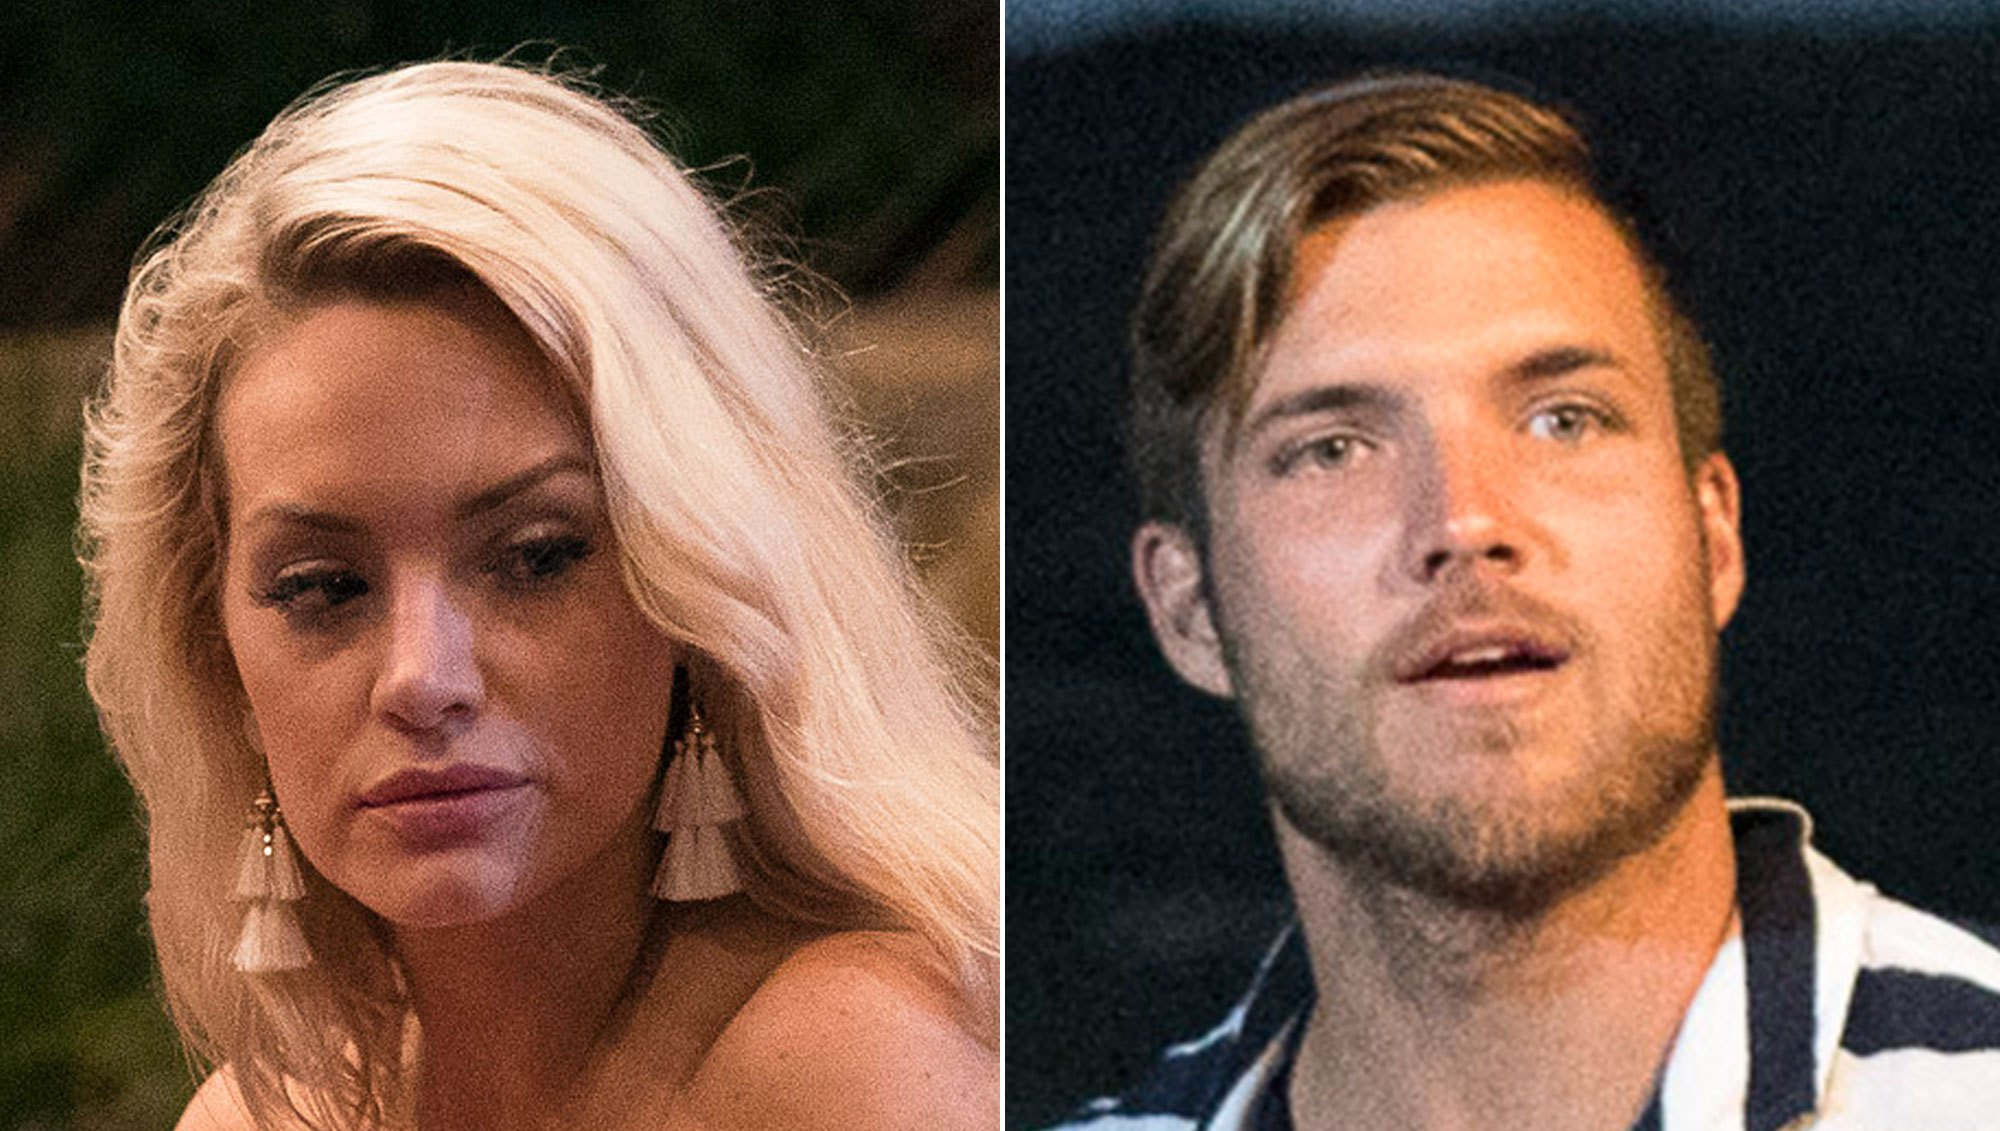 Bachelor in Paradise's Jenna Cooper Claims Ex Jordan Kimball Made Her 'Feel Insignificant and Worthless'